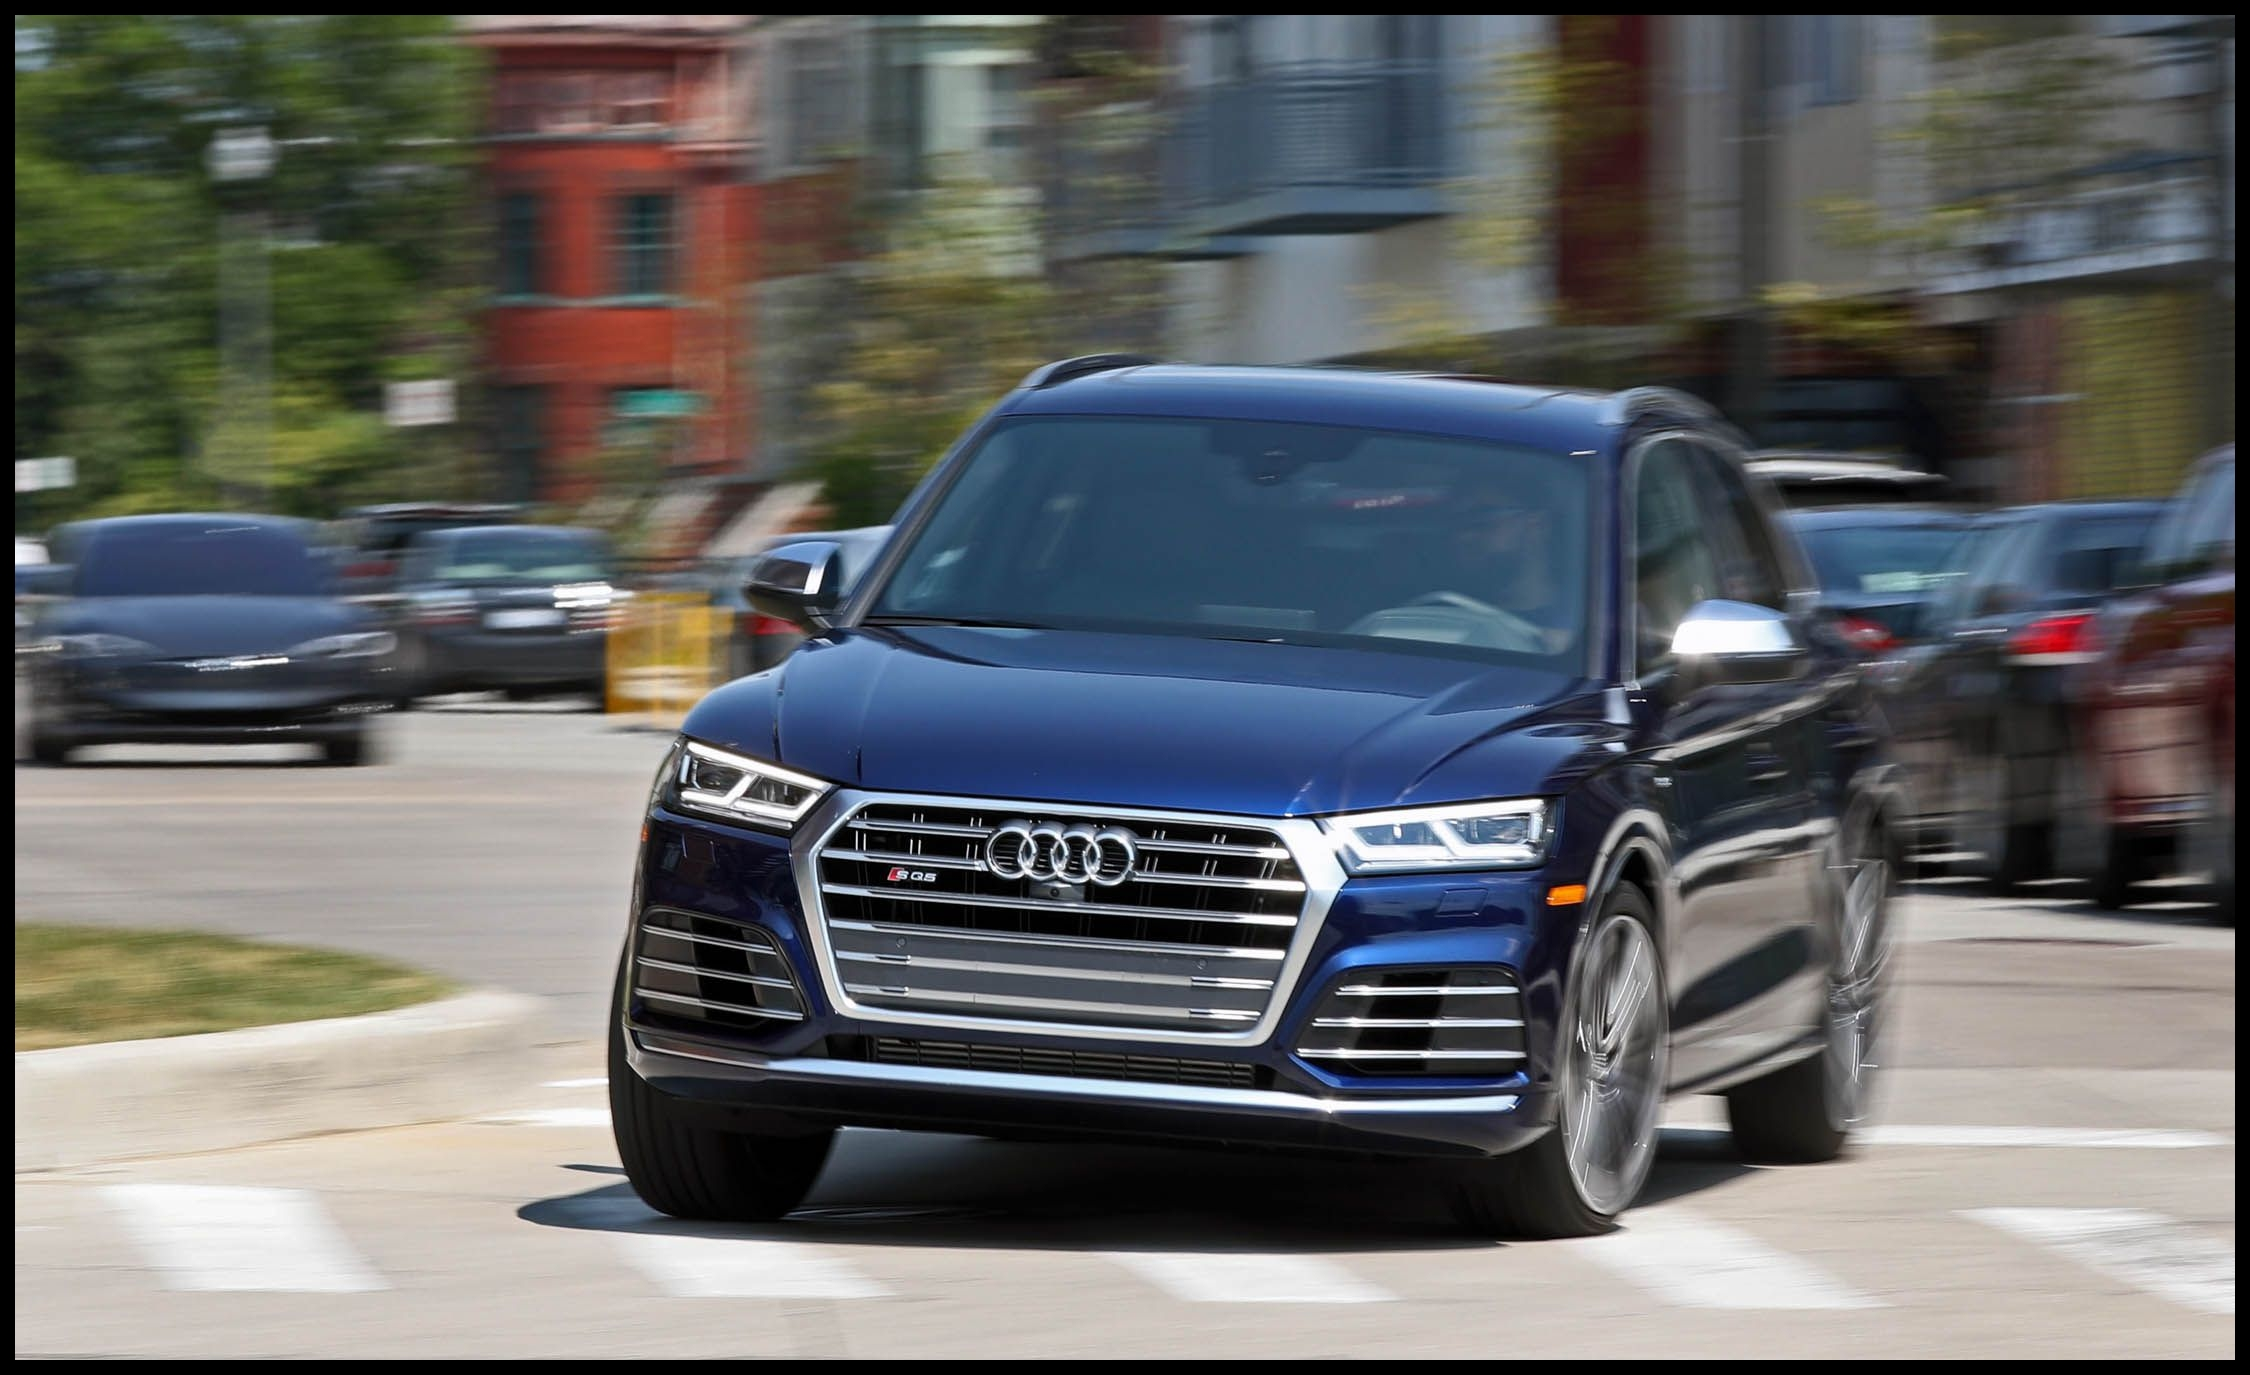 2018 audi sq5 performance and driving impressions review car and driver photo s original